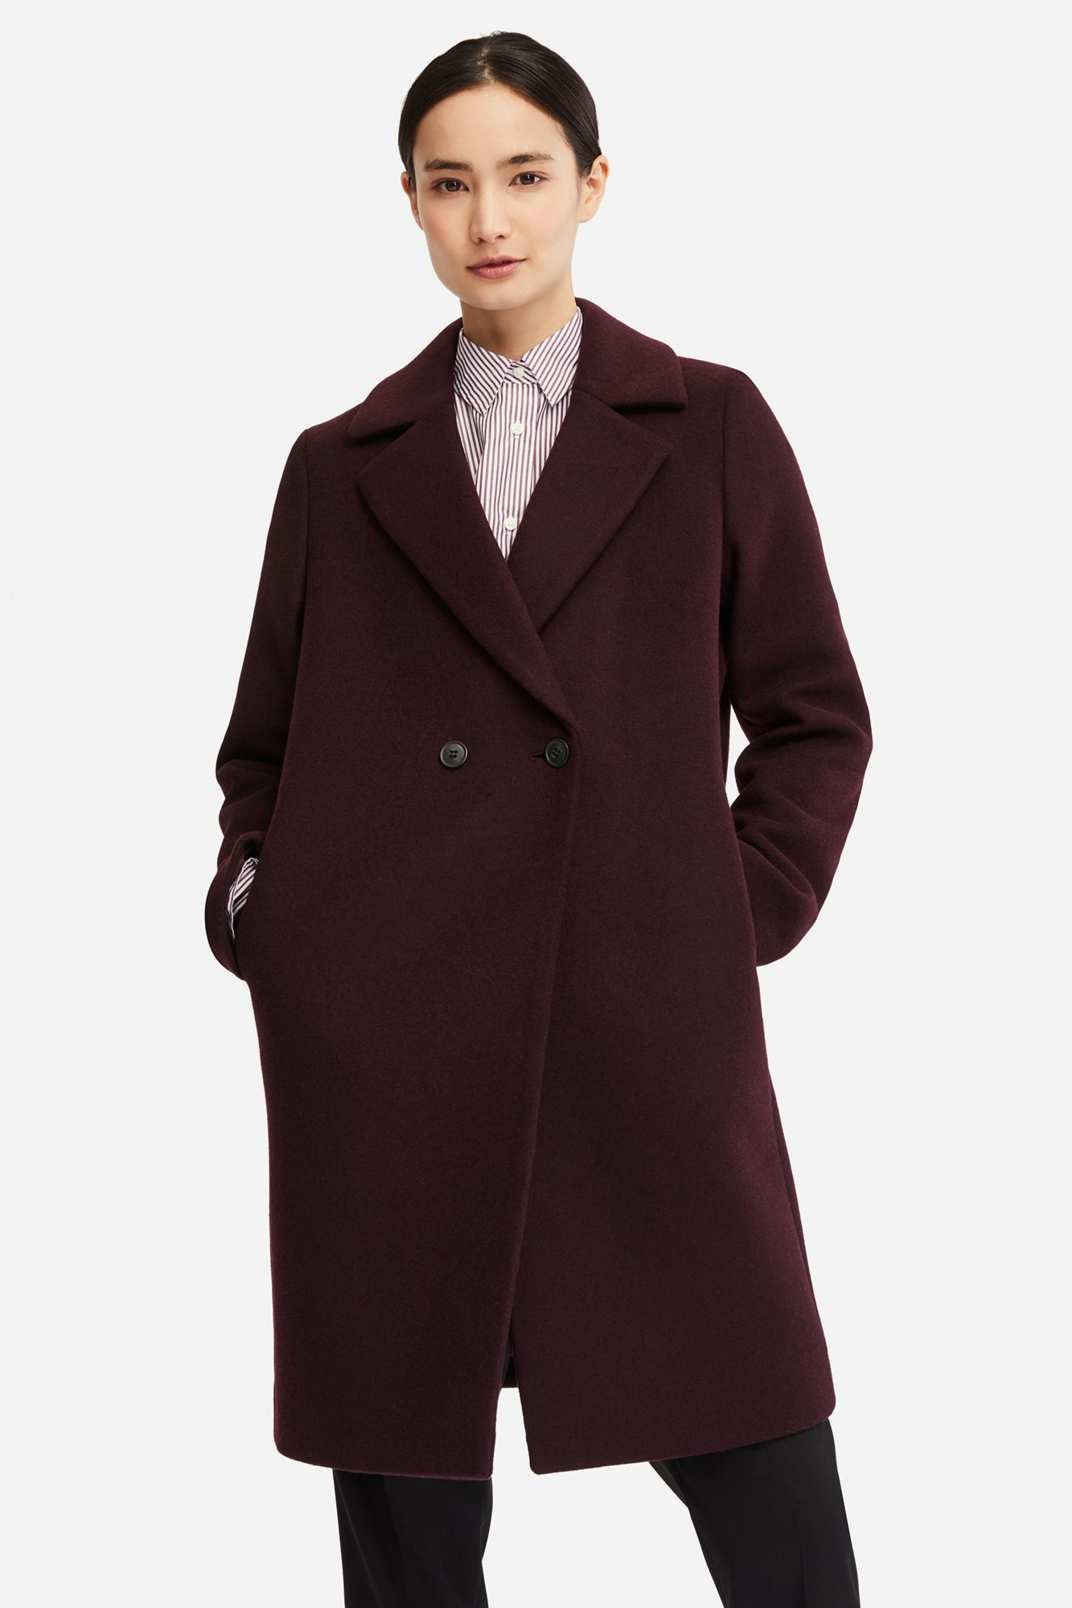 Uniqlo Women's Lightweight Wool Blend Tailored Coat